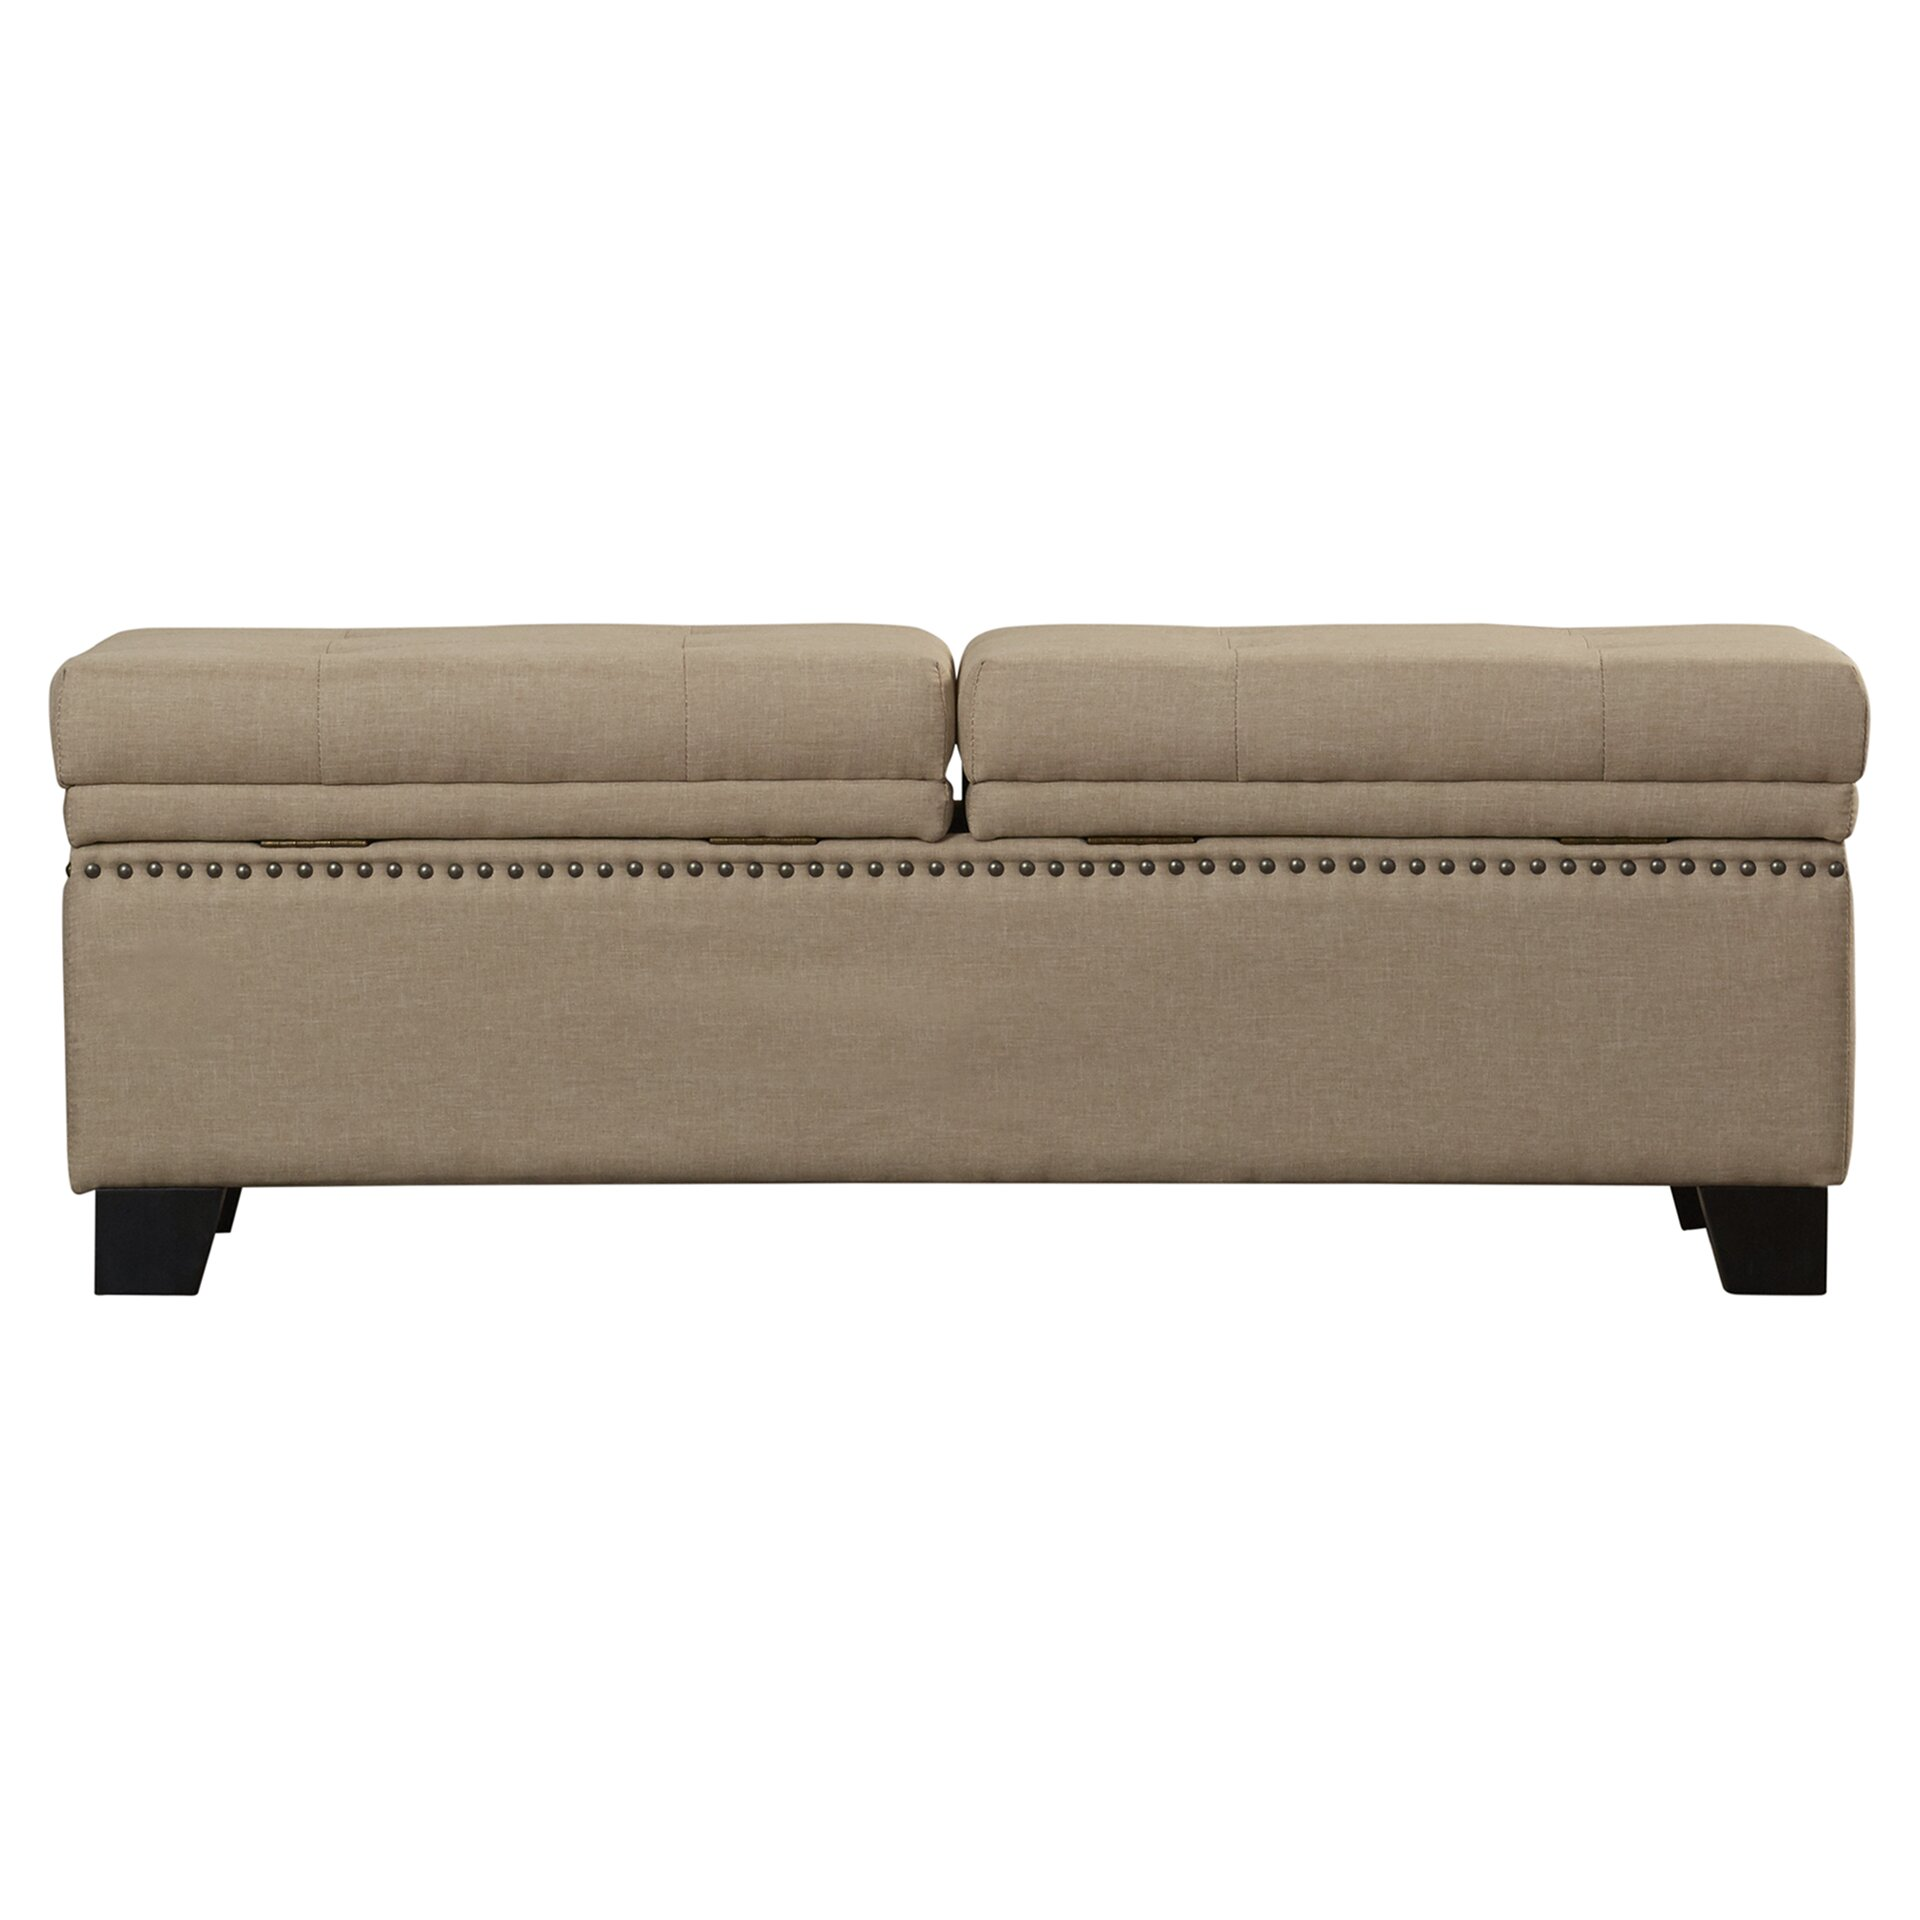 Darby home co moffet hinged upholstered storage bedroom Upholstered benches